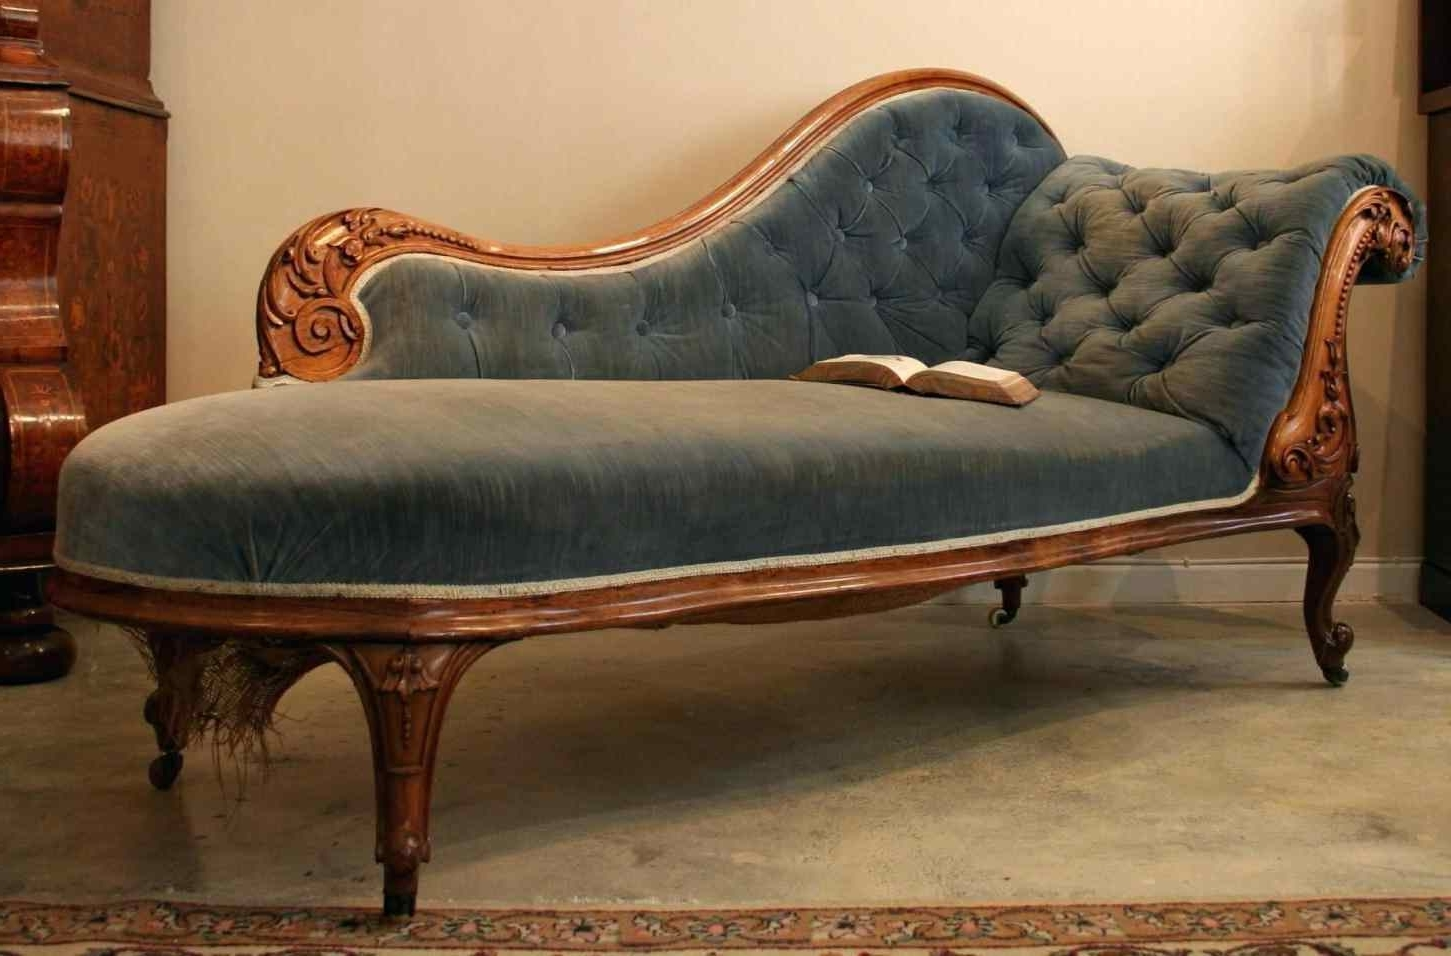 2019 Popular Vintage Chaise Lounges